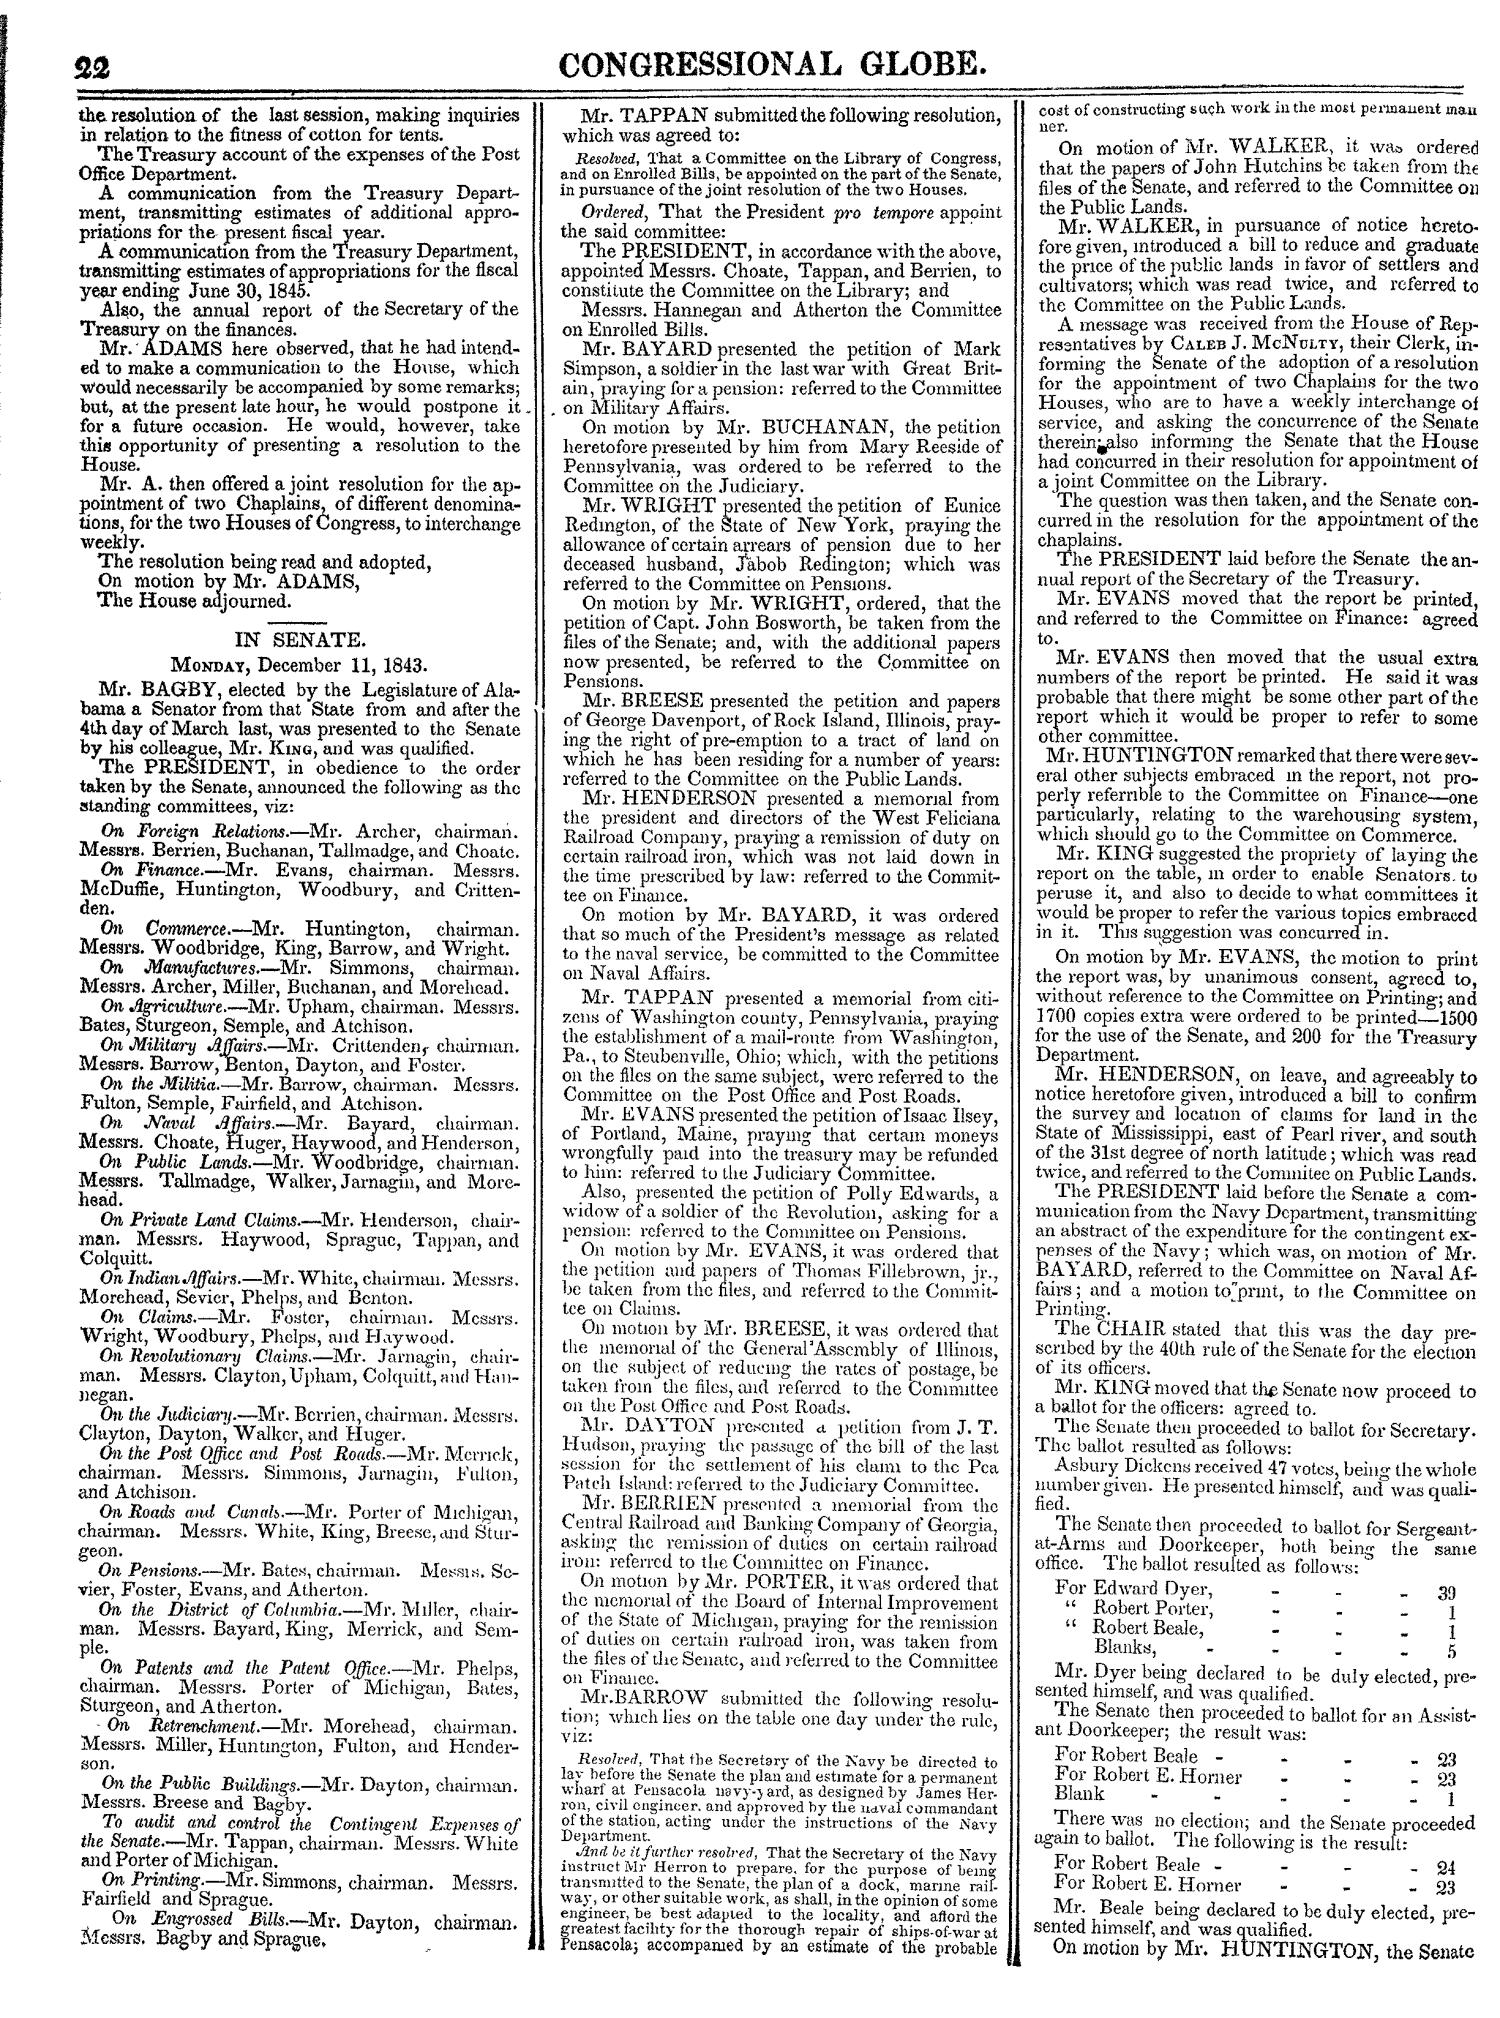 The Congressional Globe, Volume 13, Part 1: Twenty-Eighth Congress, First Session                                                                                                      22